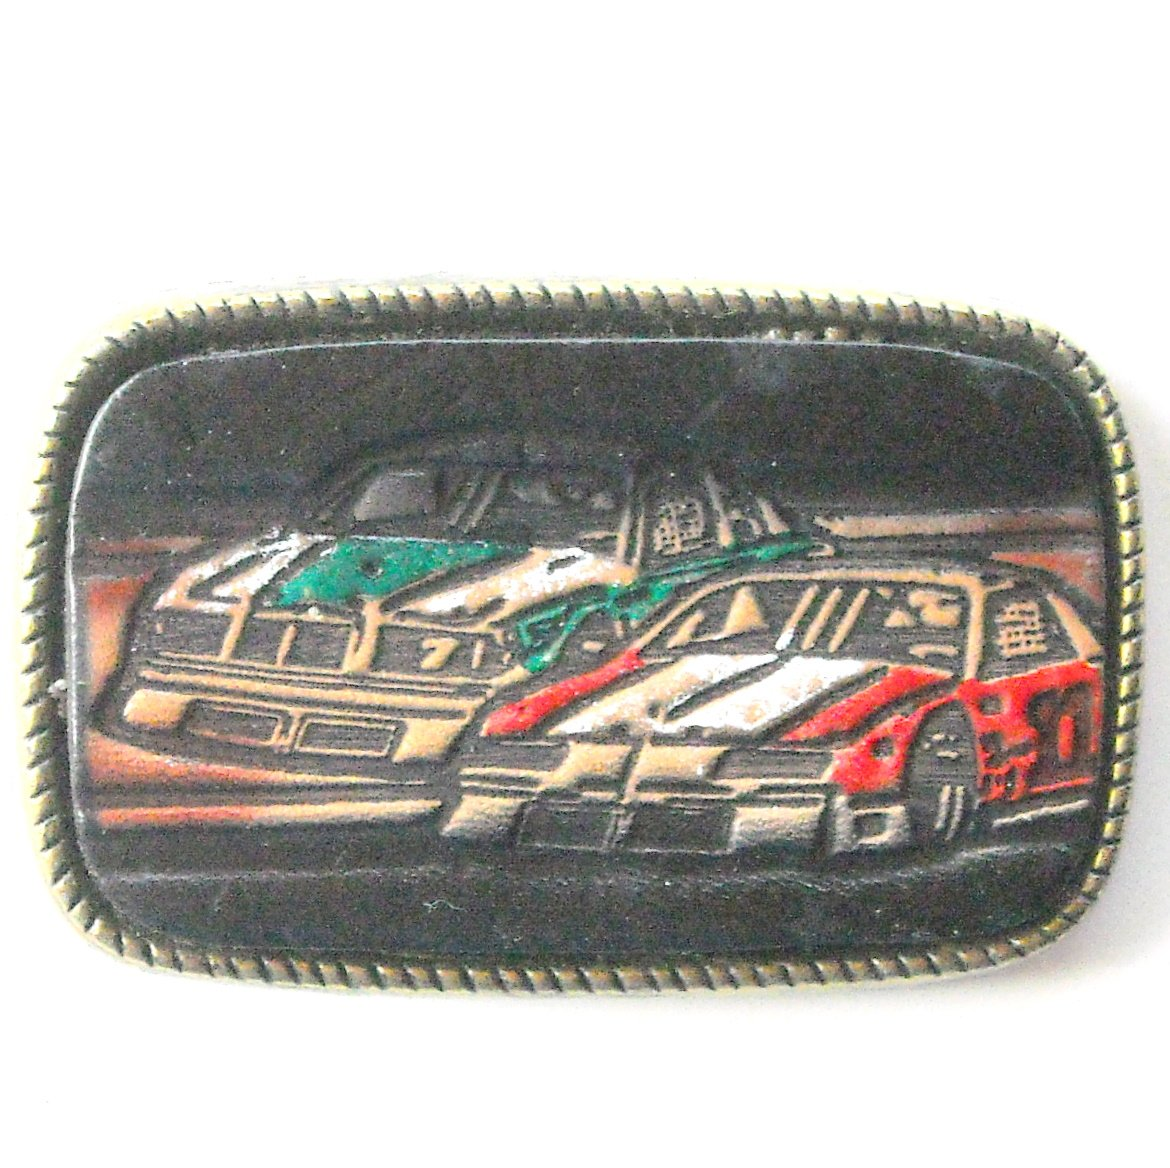 Nascar Leather Brass Belt Buckle #2